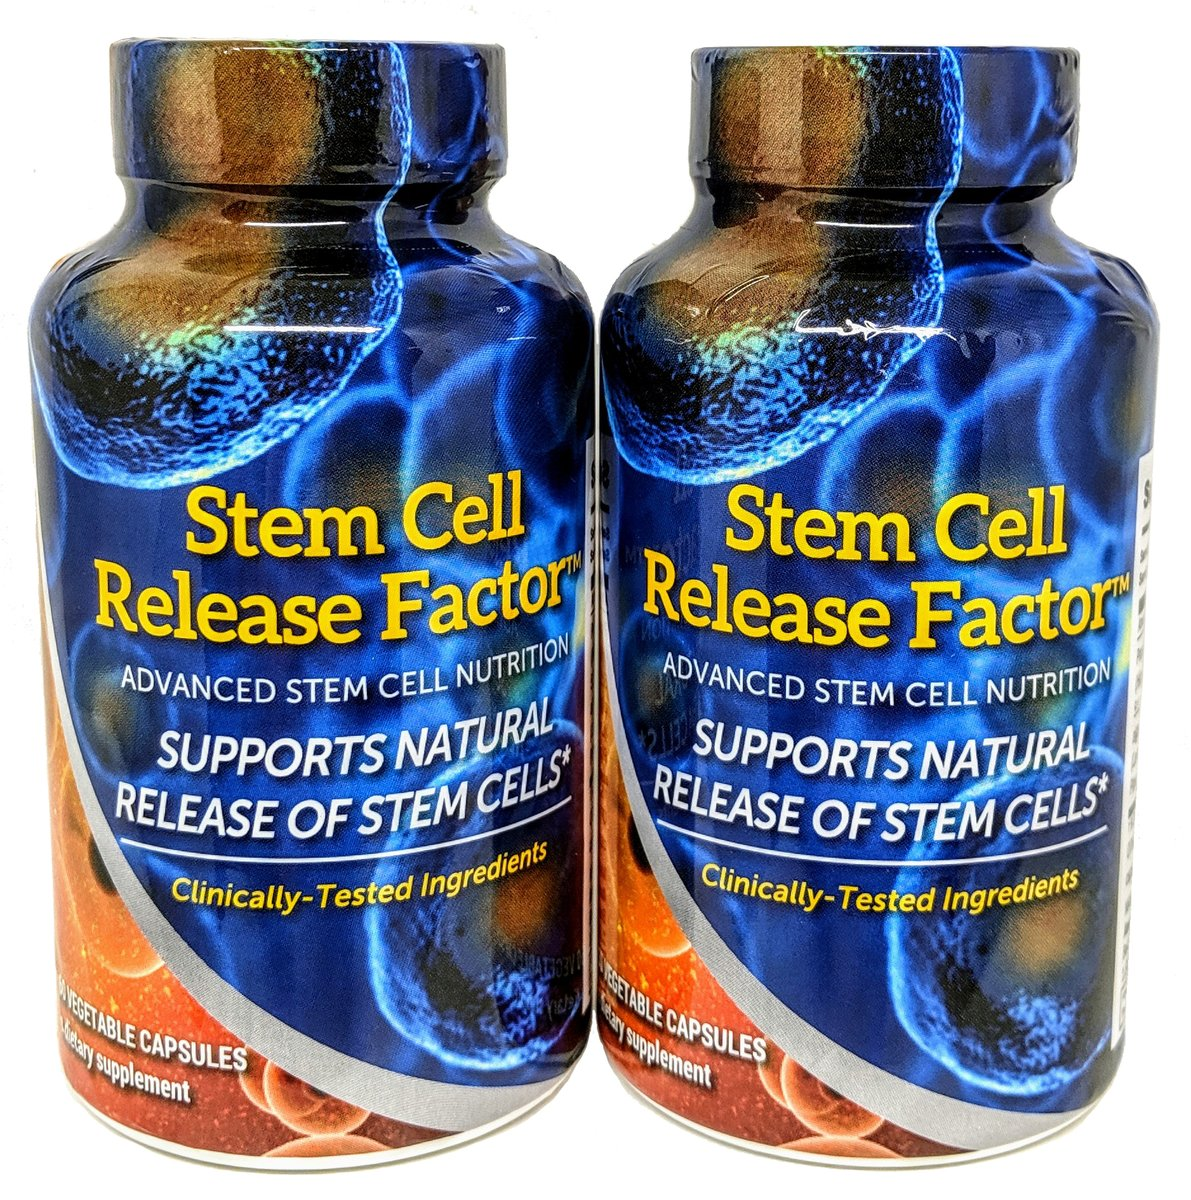 I Hope People are Thinking about their Health for 2020. Would you take a product that might be good for you with the Science to back it? Virtually Every Major Medical Center is Now Studying StemCells  Harvard University  https://www.stemcellreleasefactor.com/   My Site: https://www.americandream4me.com/healthnut1952 pic.twitter.com/O0LQo6DJ1a